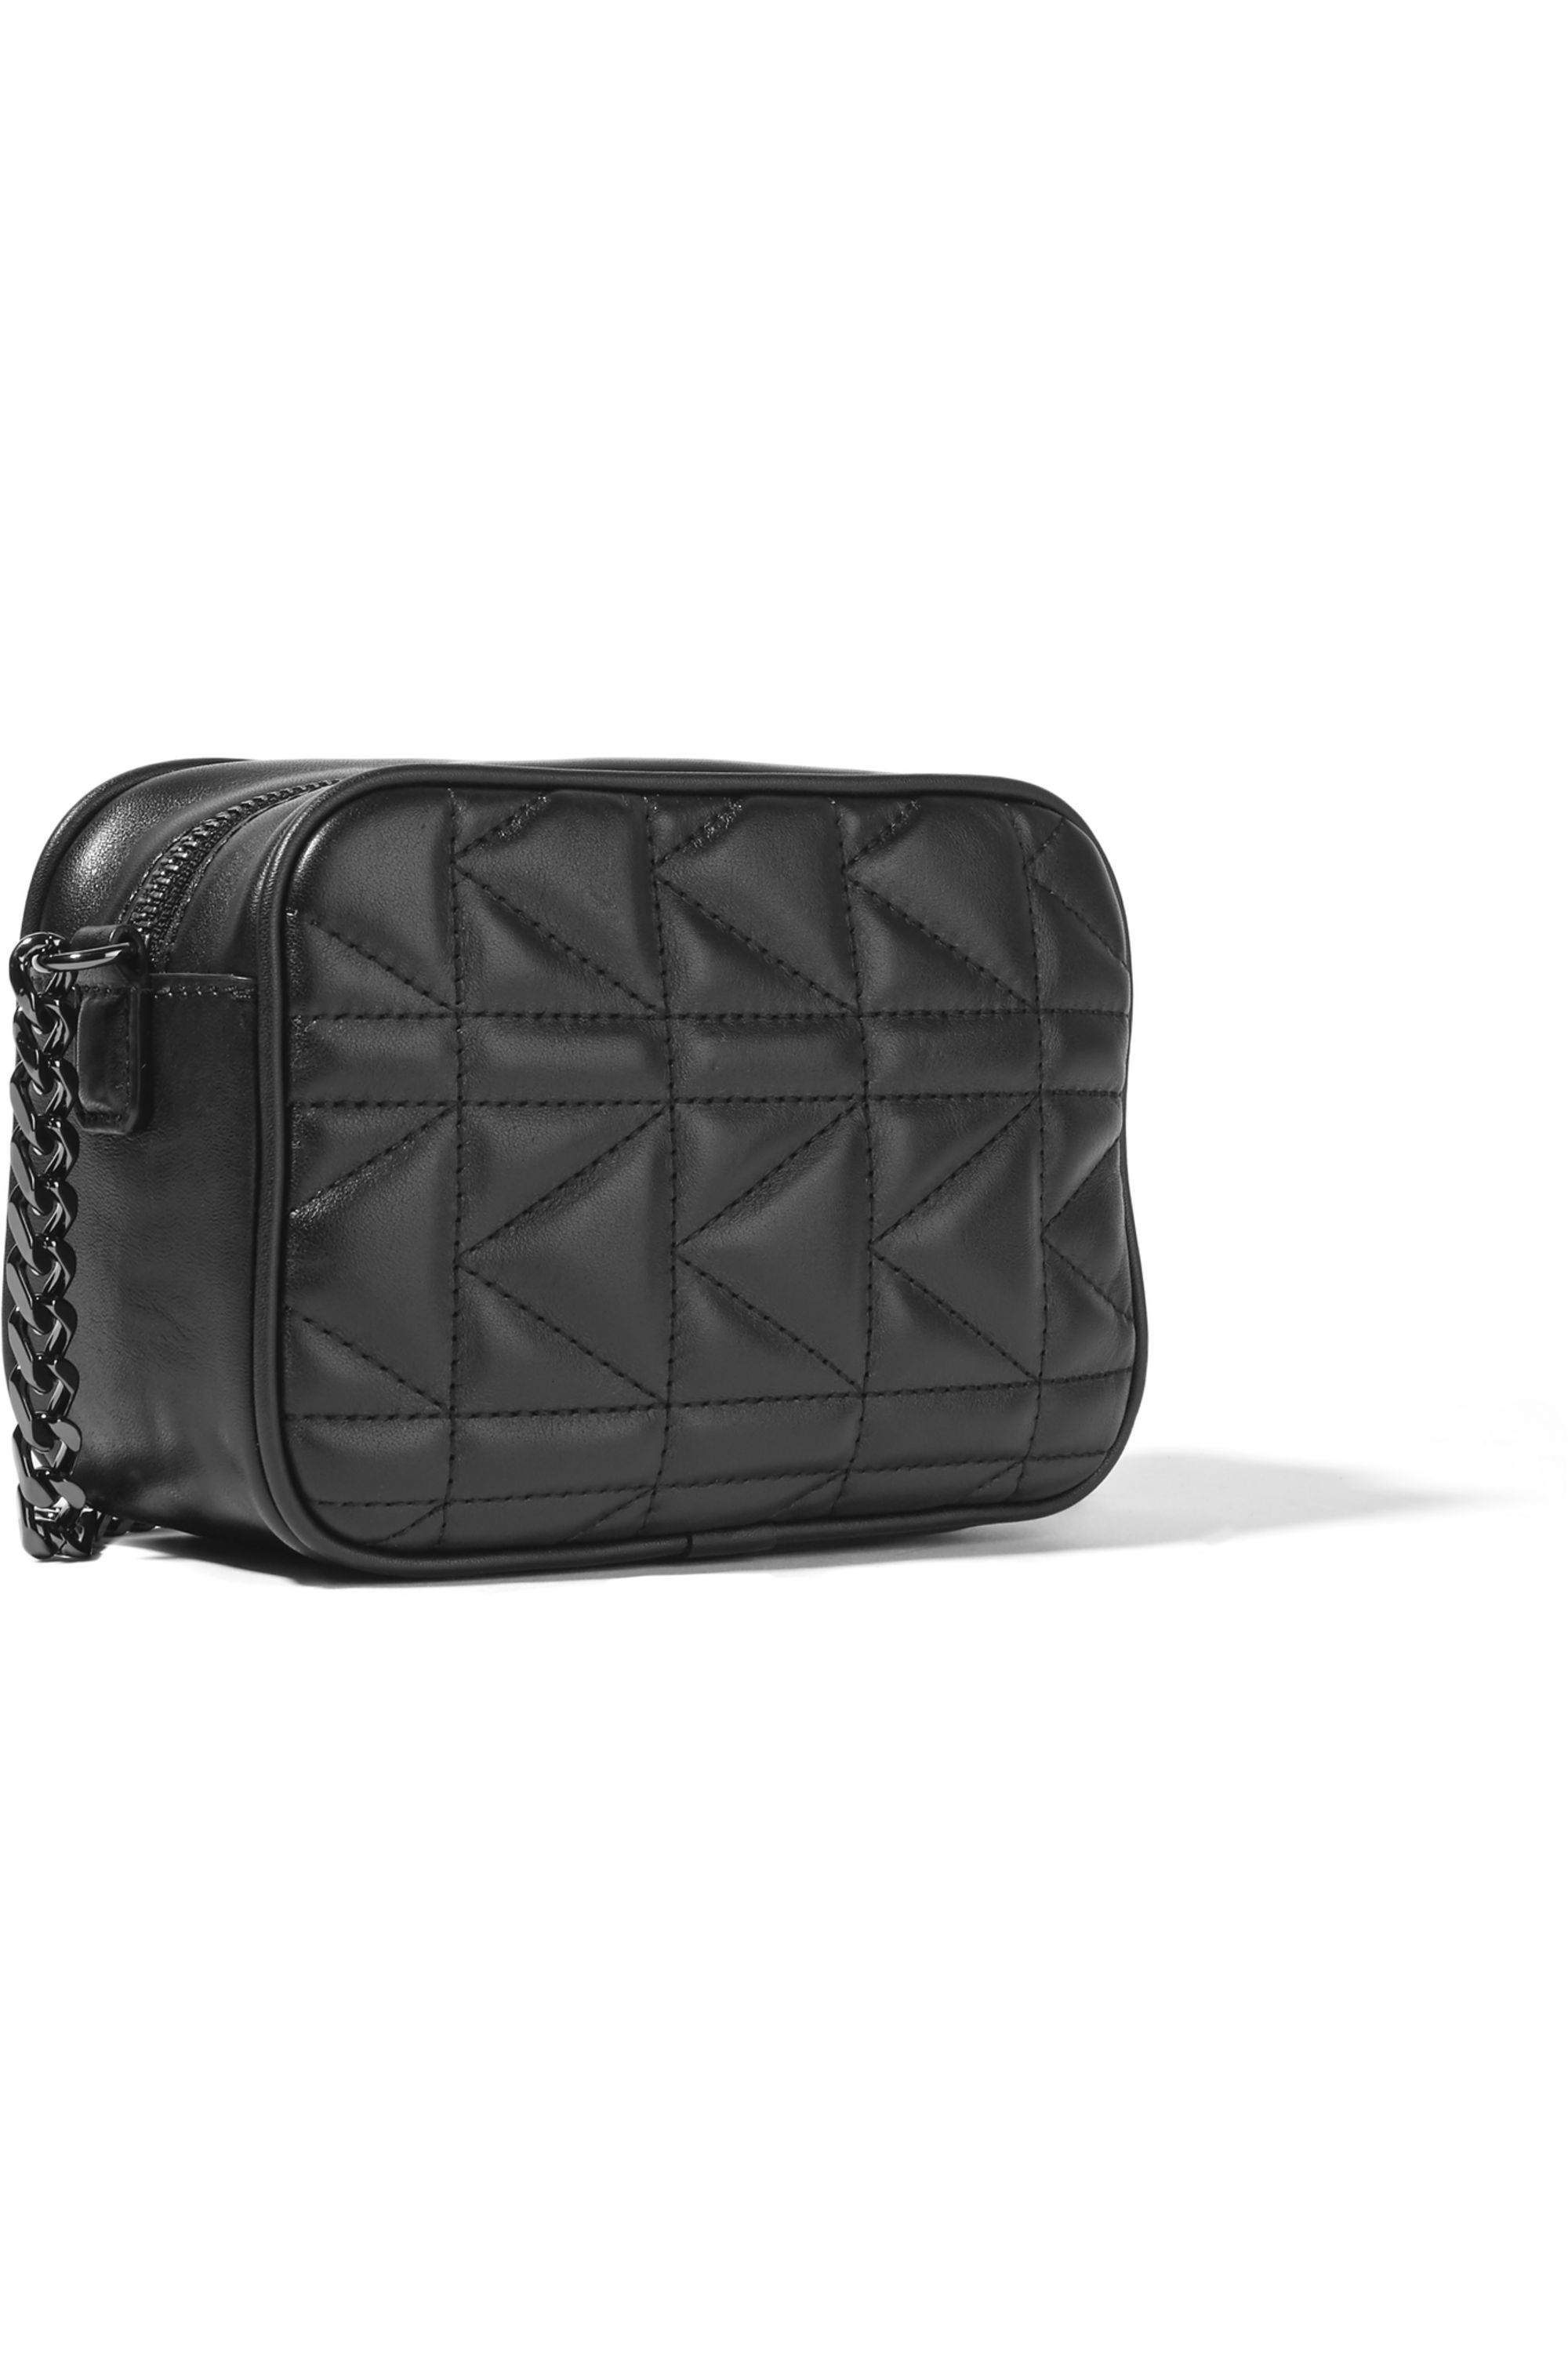 Karl Lagerfeld Kuilted small leather shoulder bag